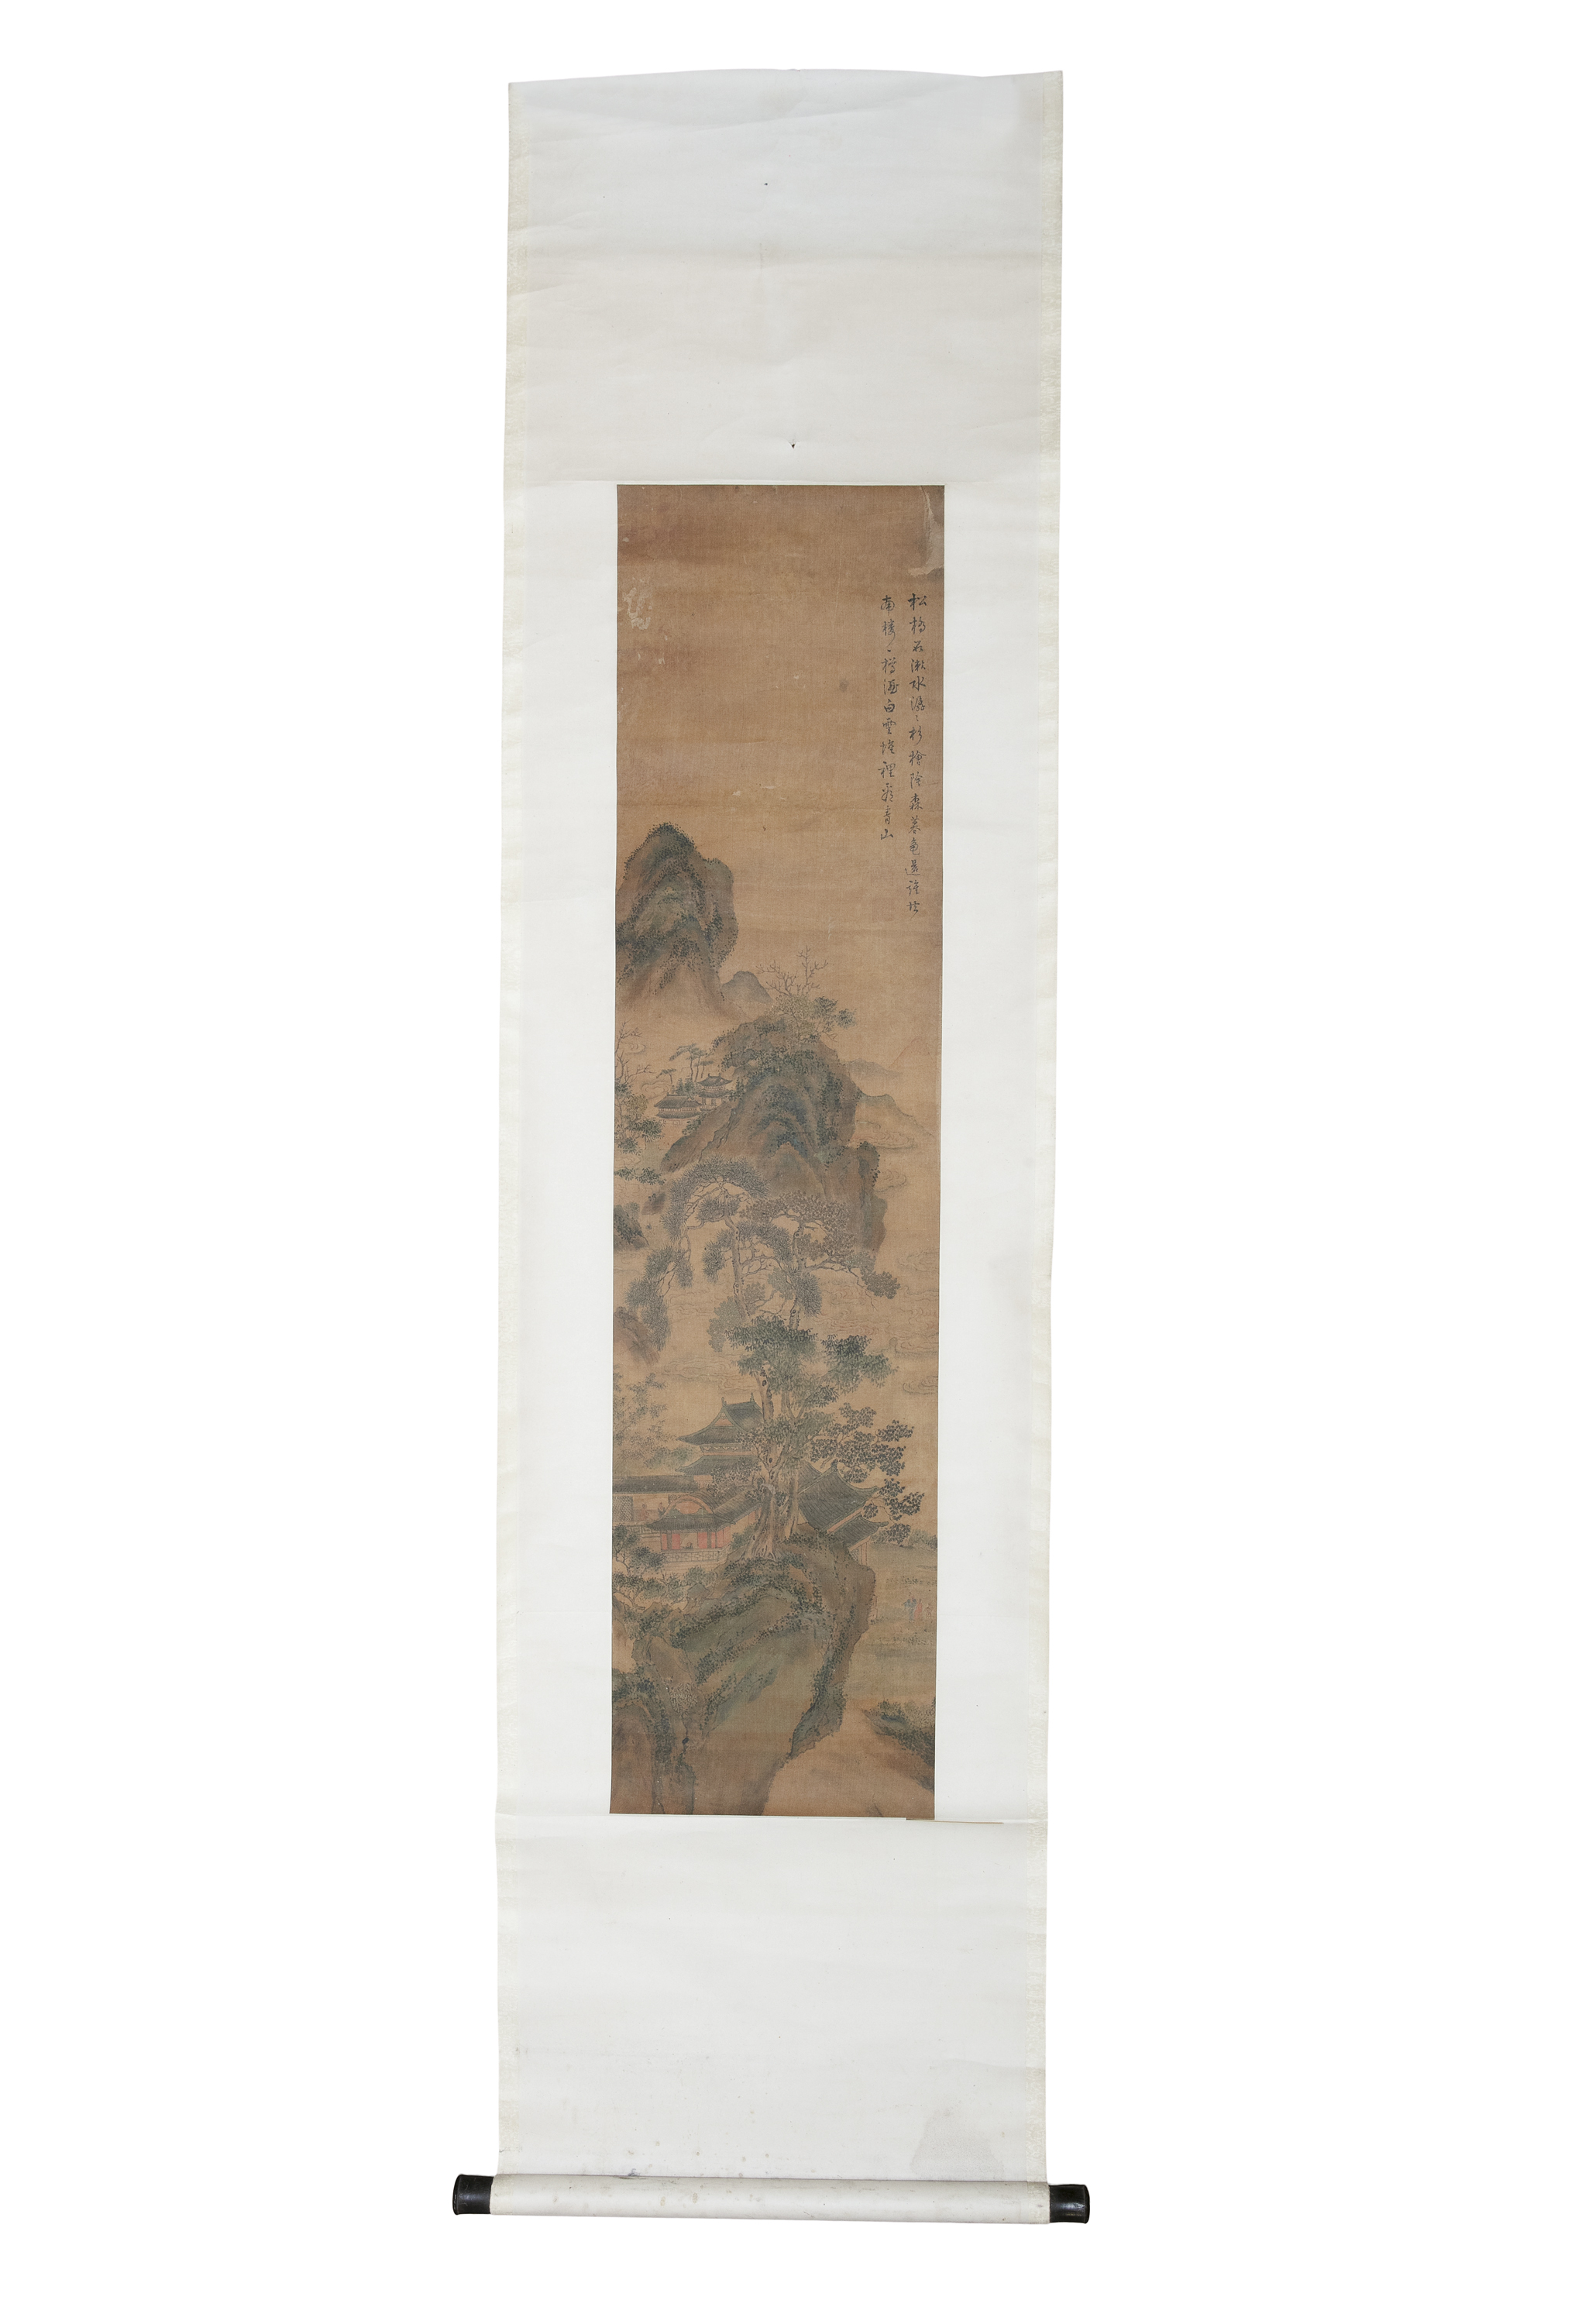 CHINESE SCHOOL, AFTER PURU 溥儒 ALSO KNOWN AS PU XINYU 溥心畬 (1896-1963) Landscape with a pavilion and - Image 2 of 7